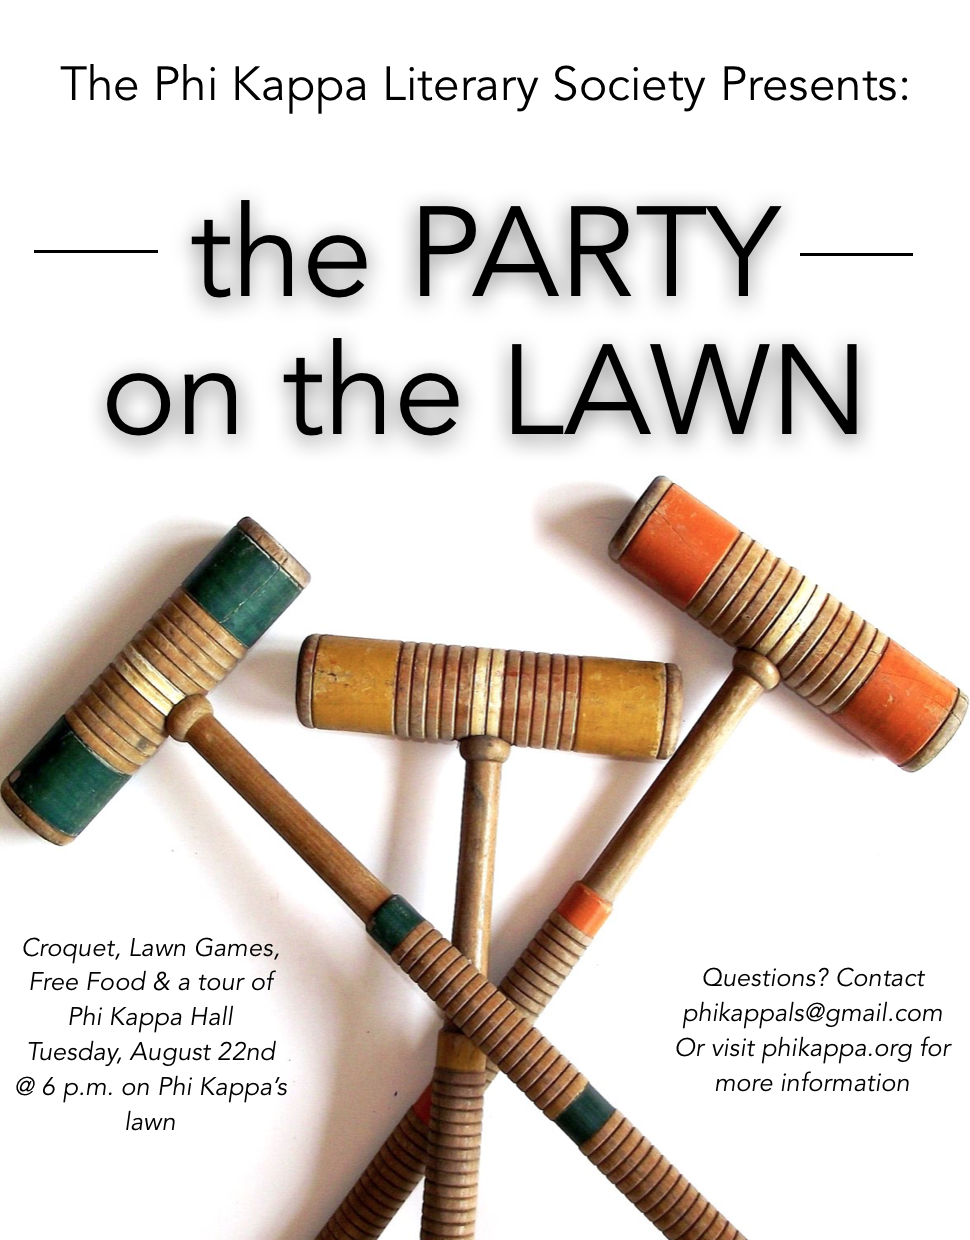 Got the back to school blues? - Come kick them with Phi Kappa at the Party on the Lawn! Join us on Tuesday, August 22nd, 2017 at 6 p.m. while the semester is still kicking off!